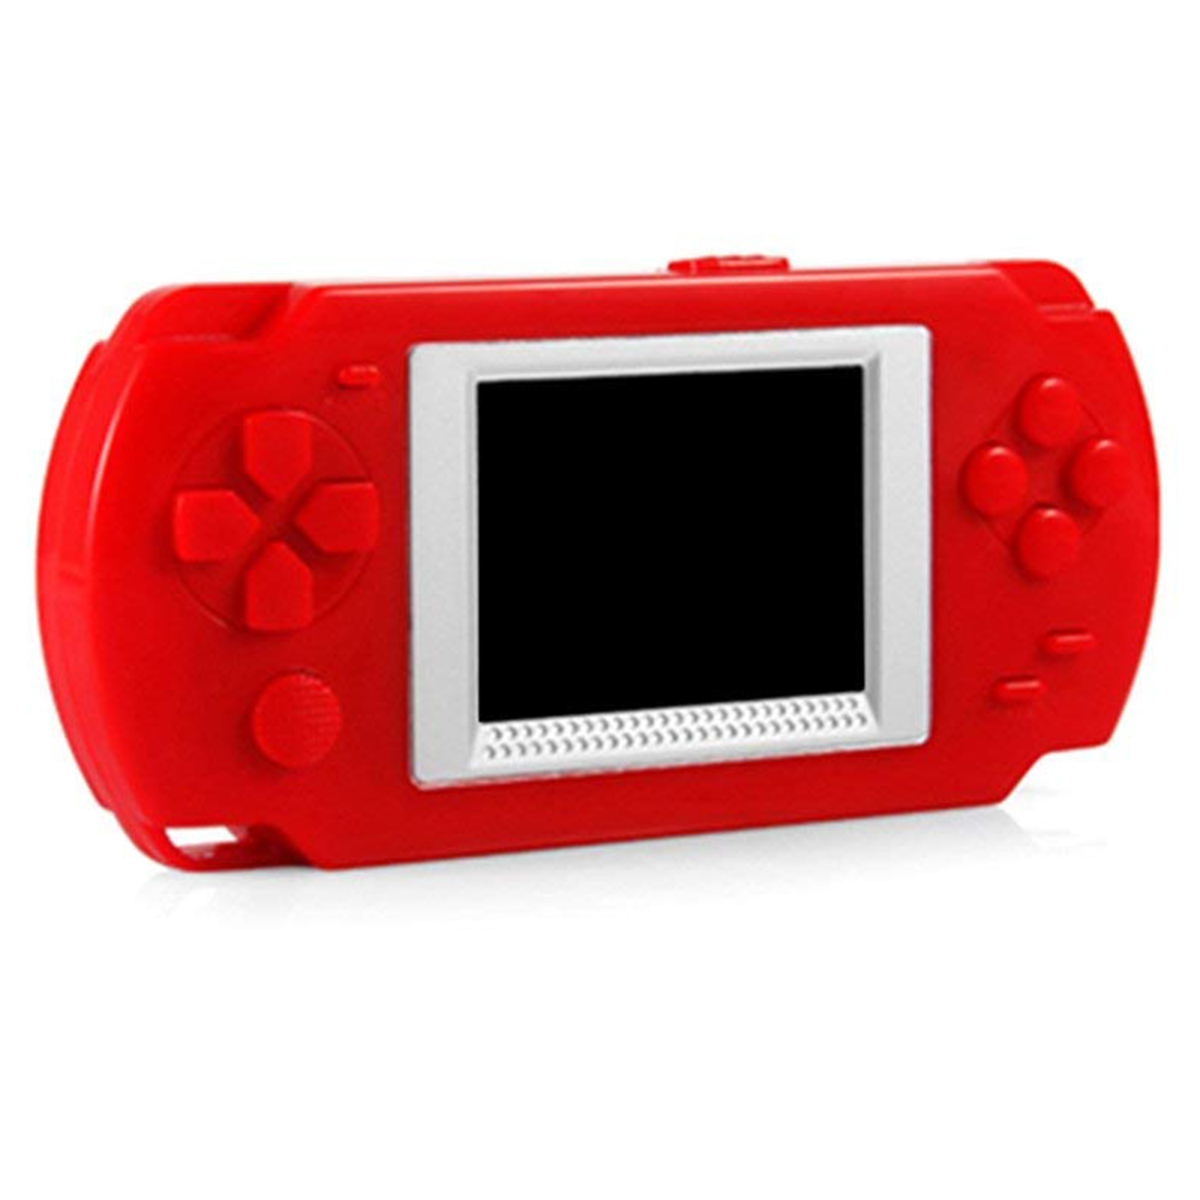 Cute Candy Game Console with 200+ Classic Games FC Games for Children